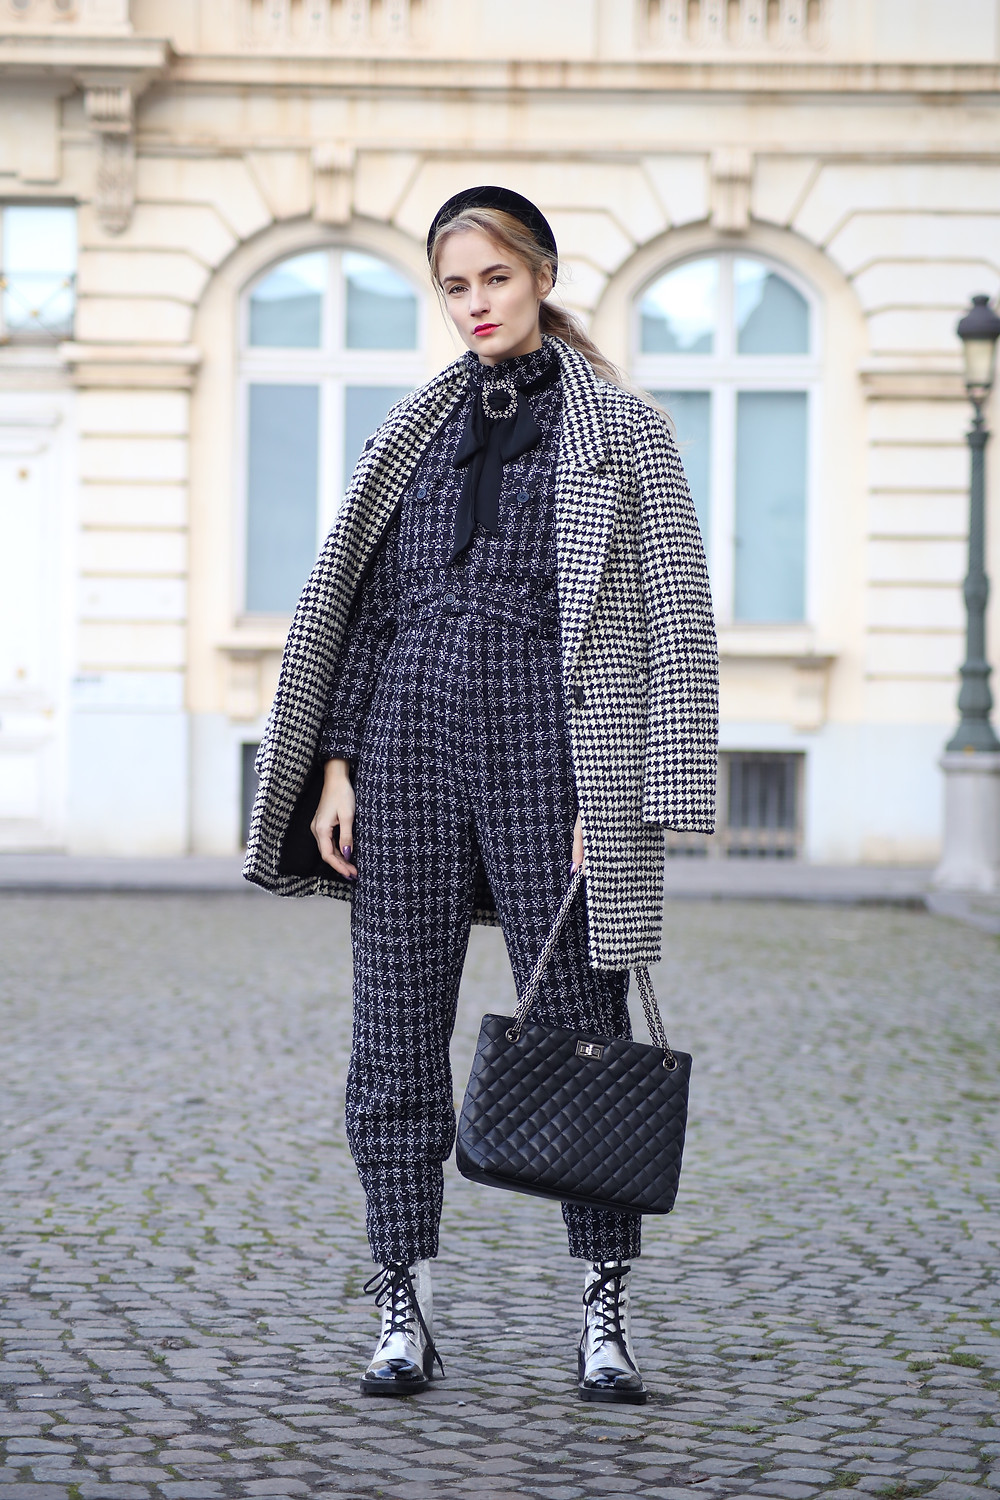 tweed-look-outfit.jpg